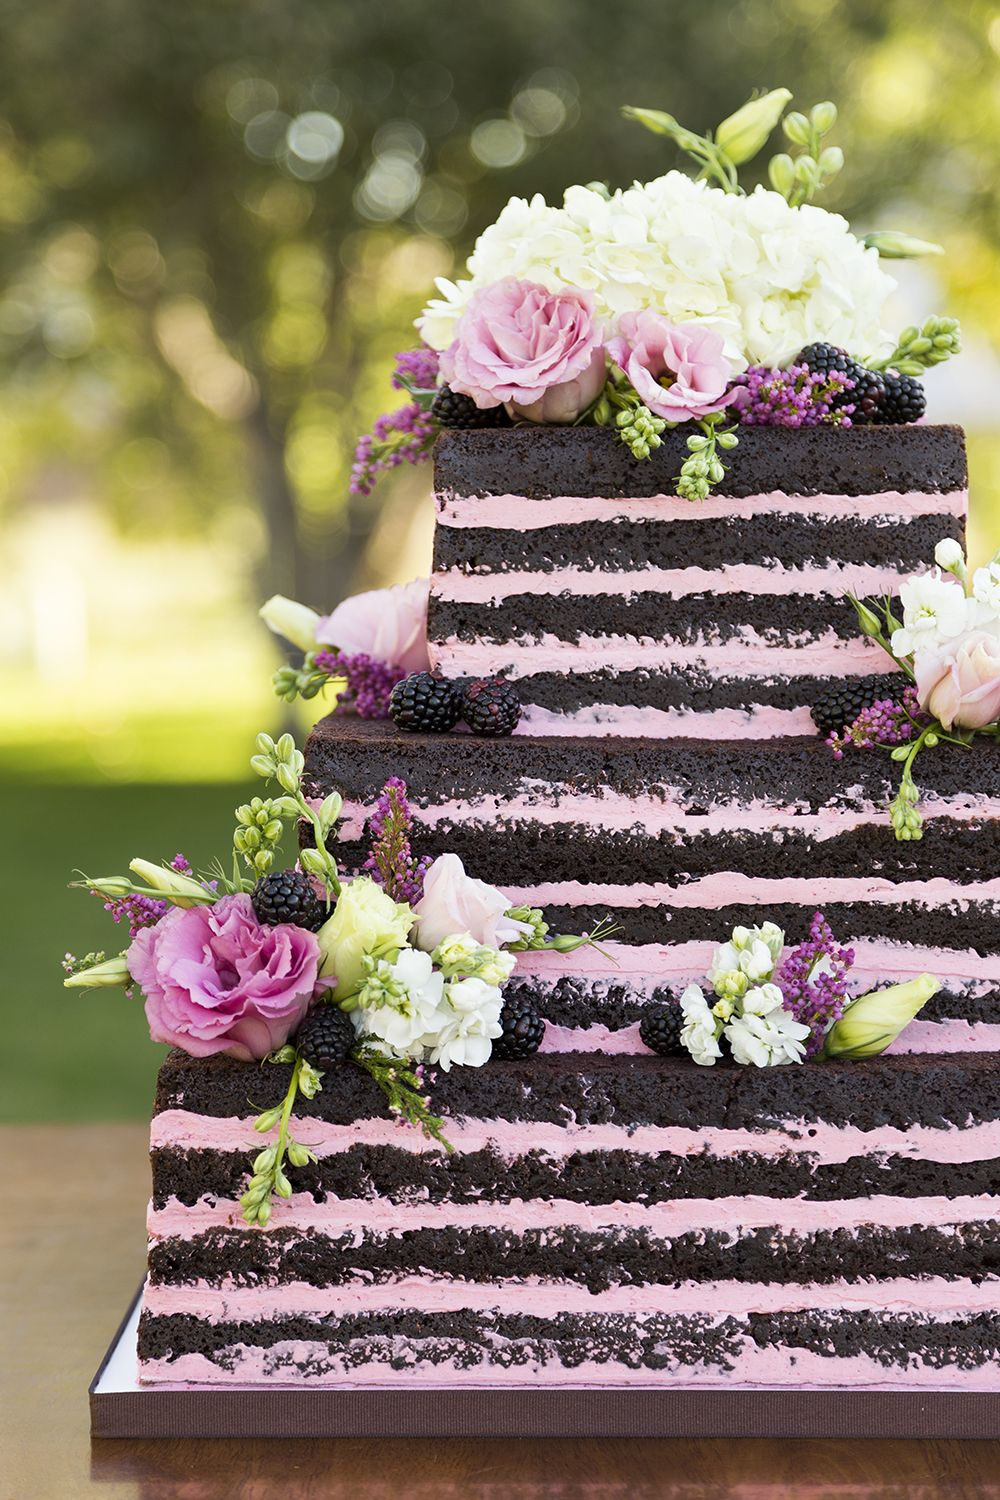 Naked Cake - Chocolate with Raspberry Buttercream Filling - Cassidy Tuttle Photography